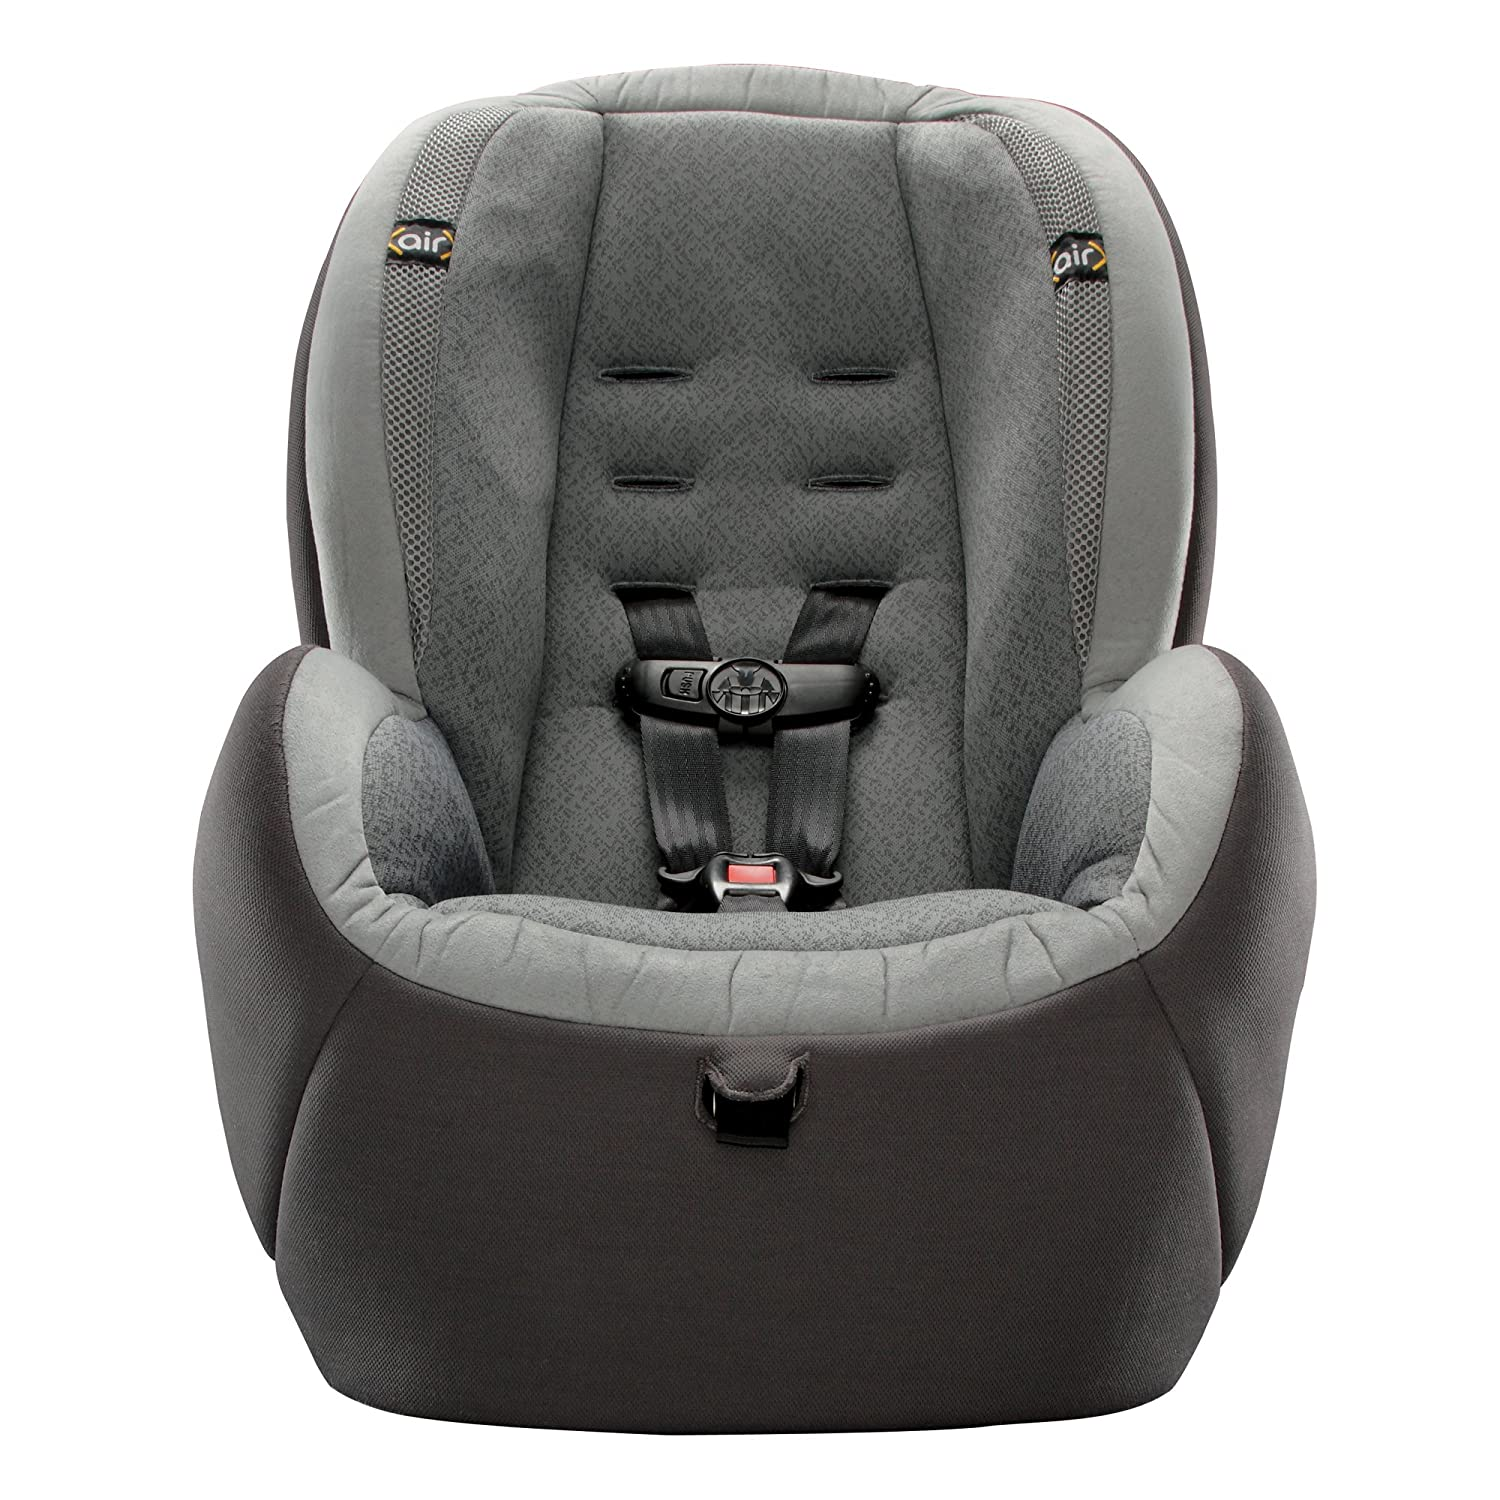 Amazon.com : Safety 1st Onside Air Convertible Car Seat ...